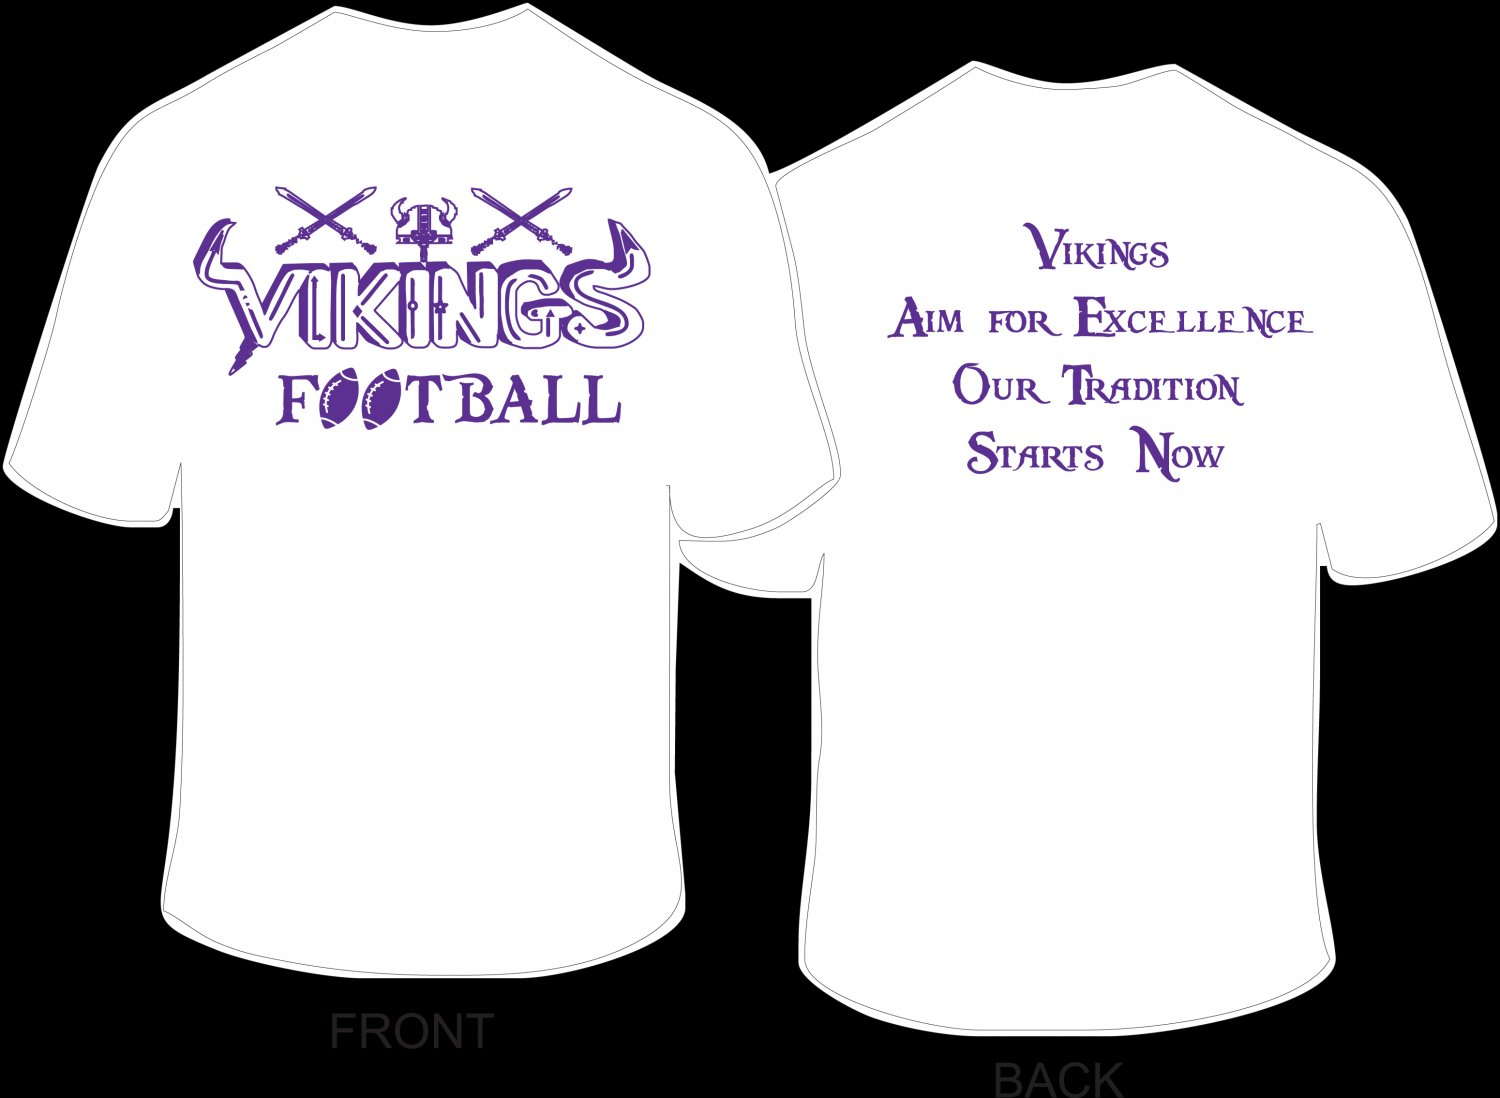 Vikings Name T-Shirt (Child: M, L, XL; Adult: S, M, L, XL)